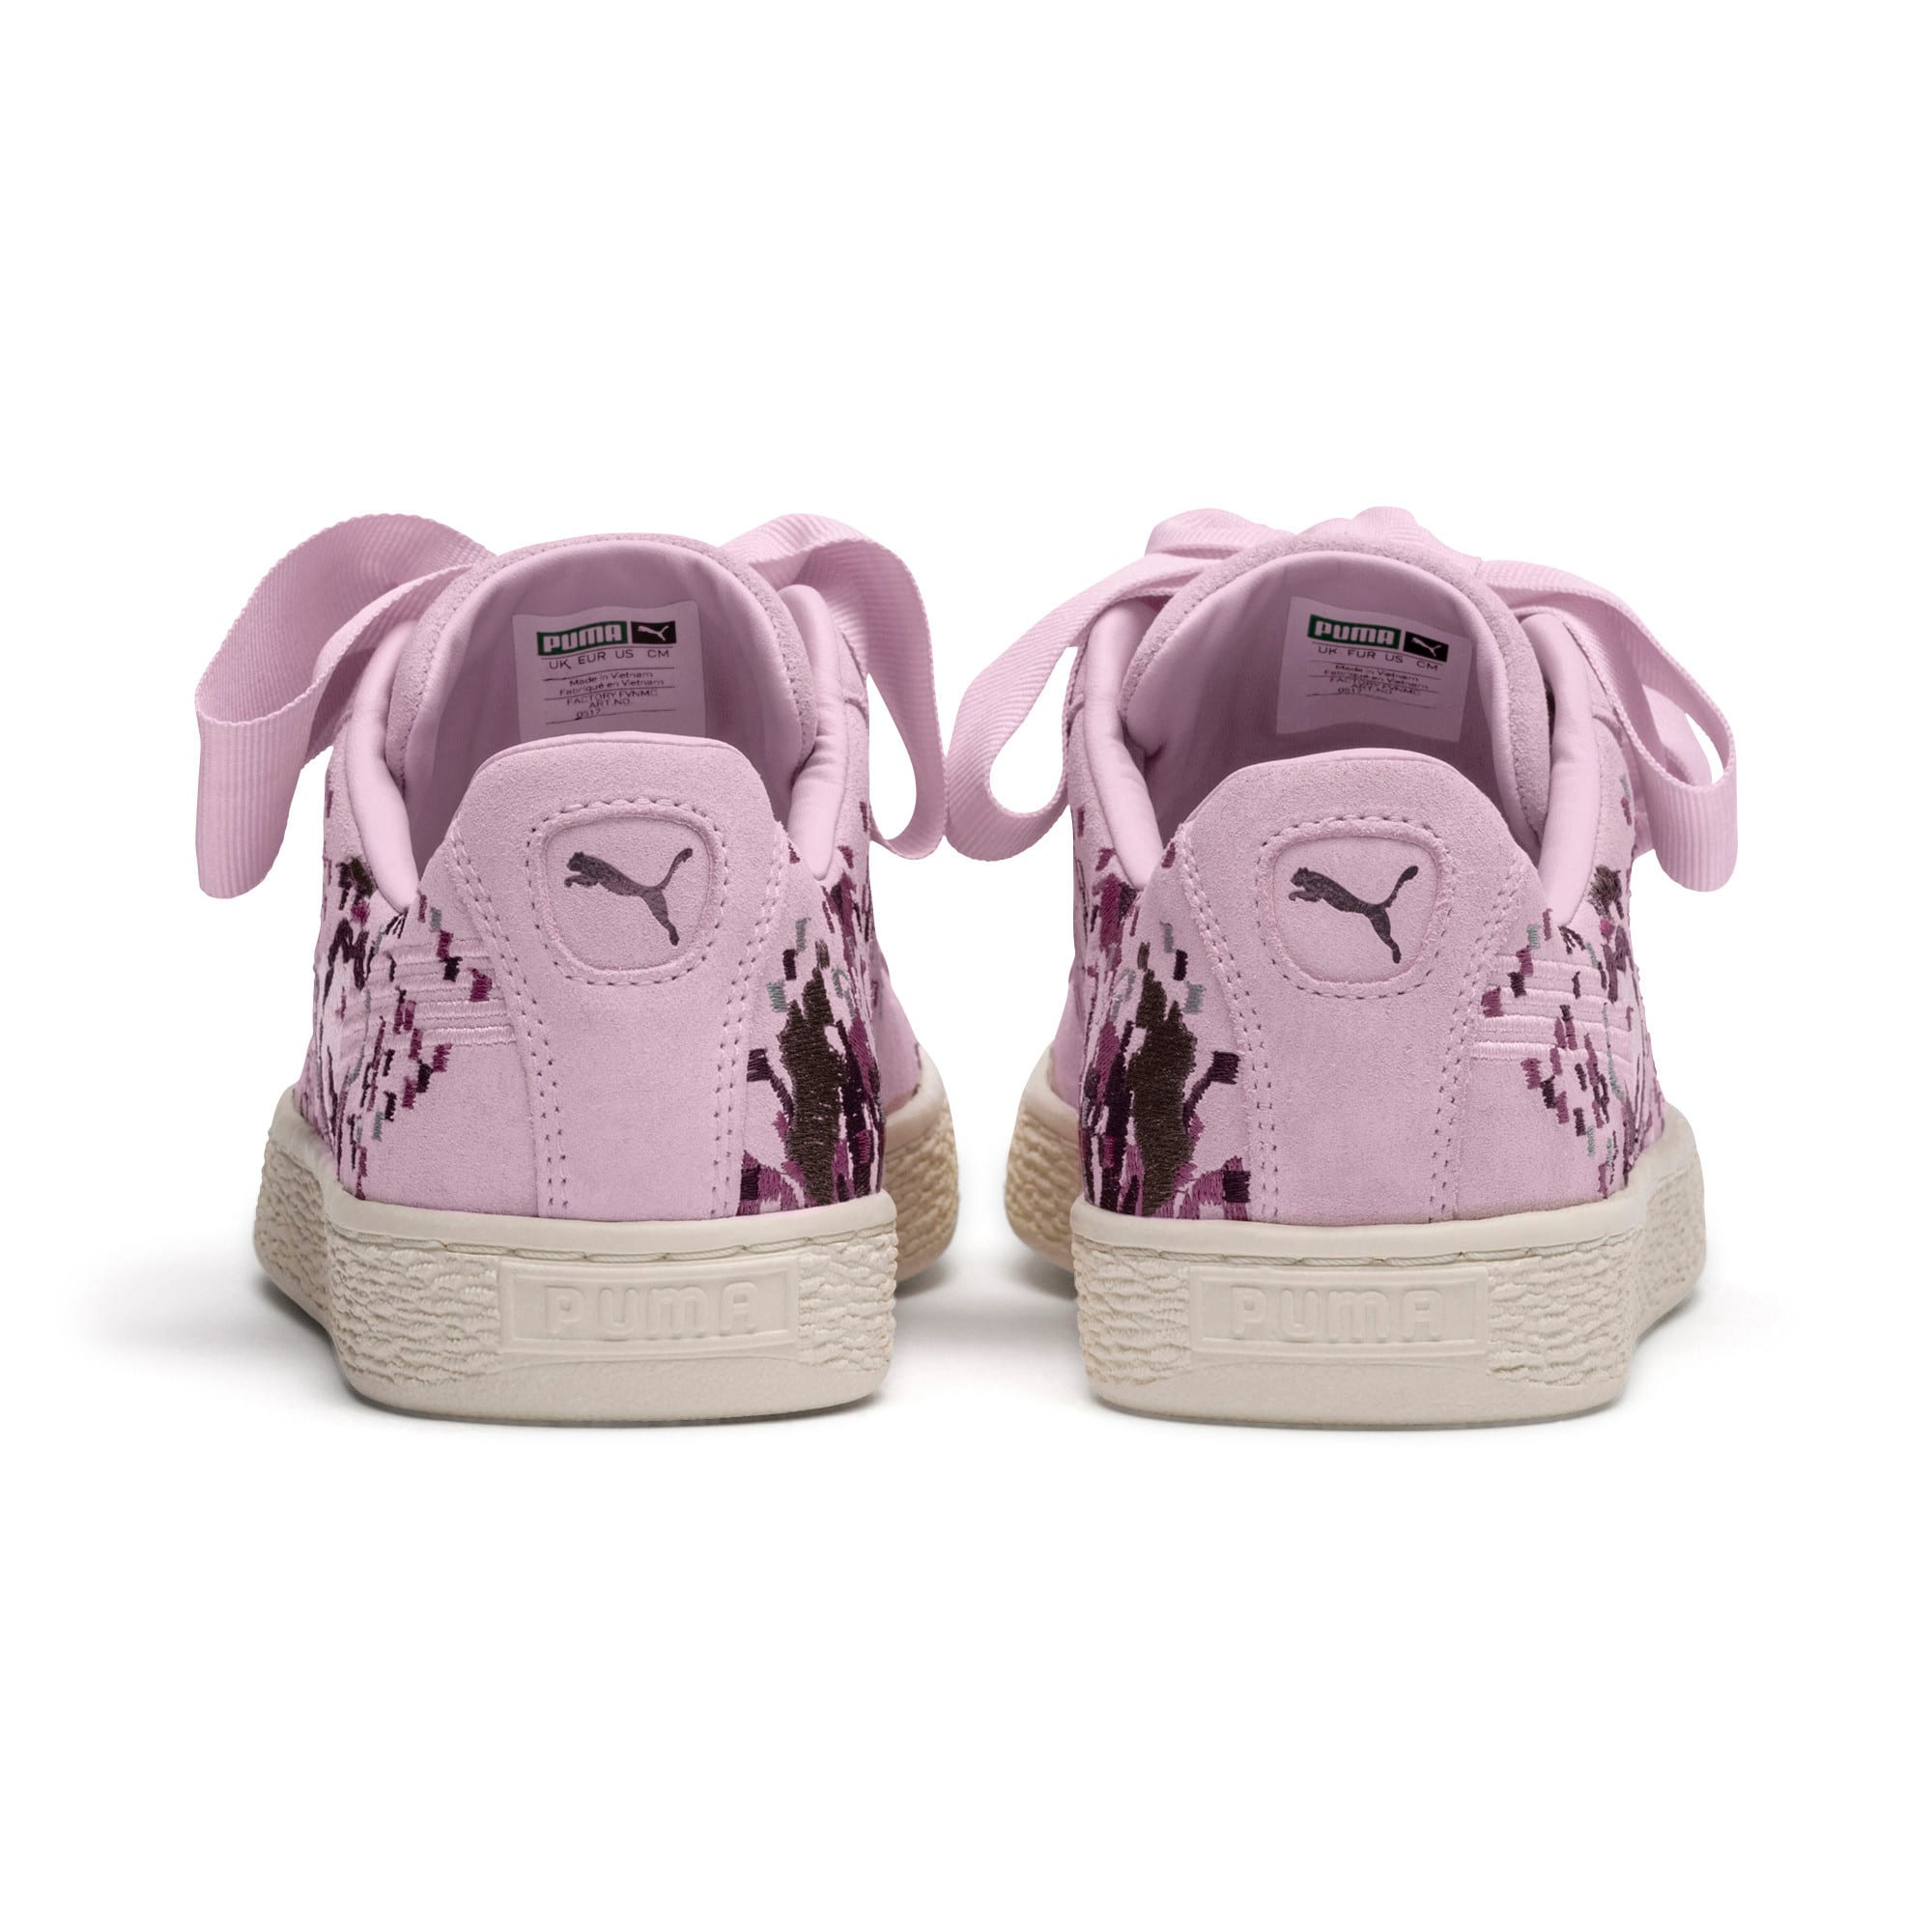 Thumbnail 4 of Suede Heart Embossed Women's Sneakers, Winsome Orchid, medium